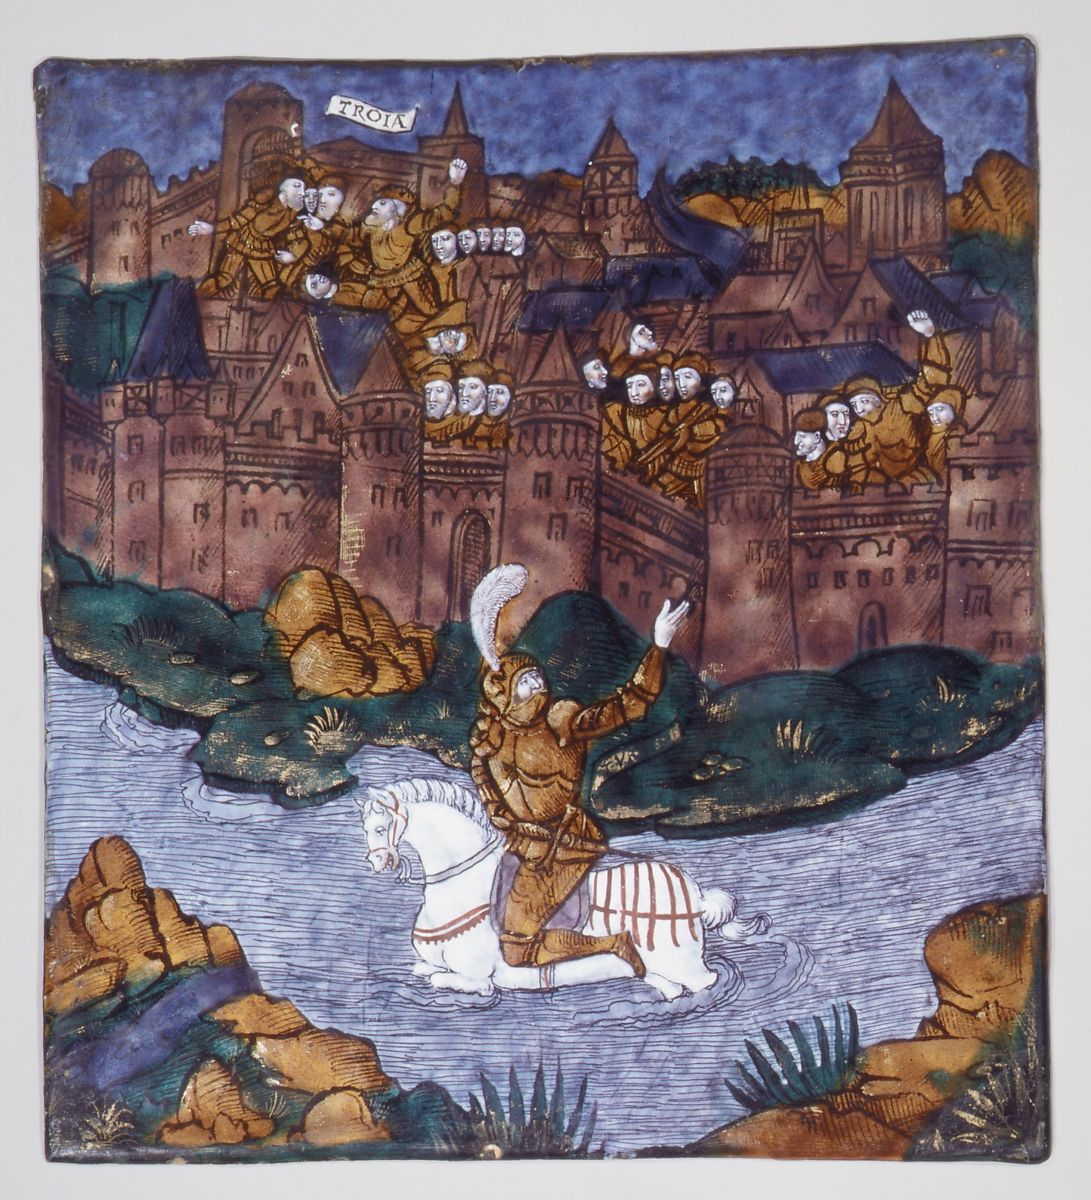 Master of the Aeneid | Turnus, Overwhelmed by the Trojans, Crosses the River to Return to His Companions (Aeneid, Book IX) | French, Limoges | The Met